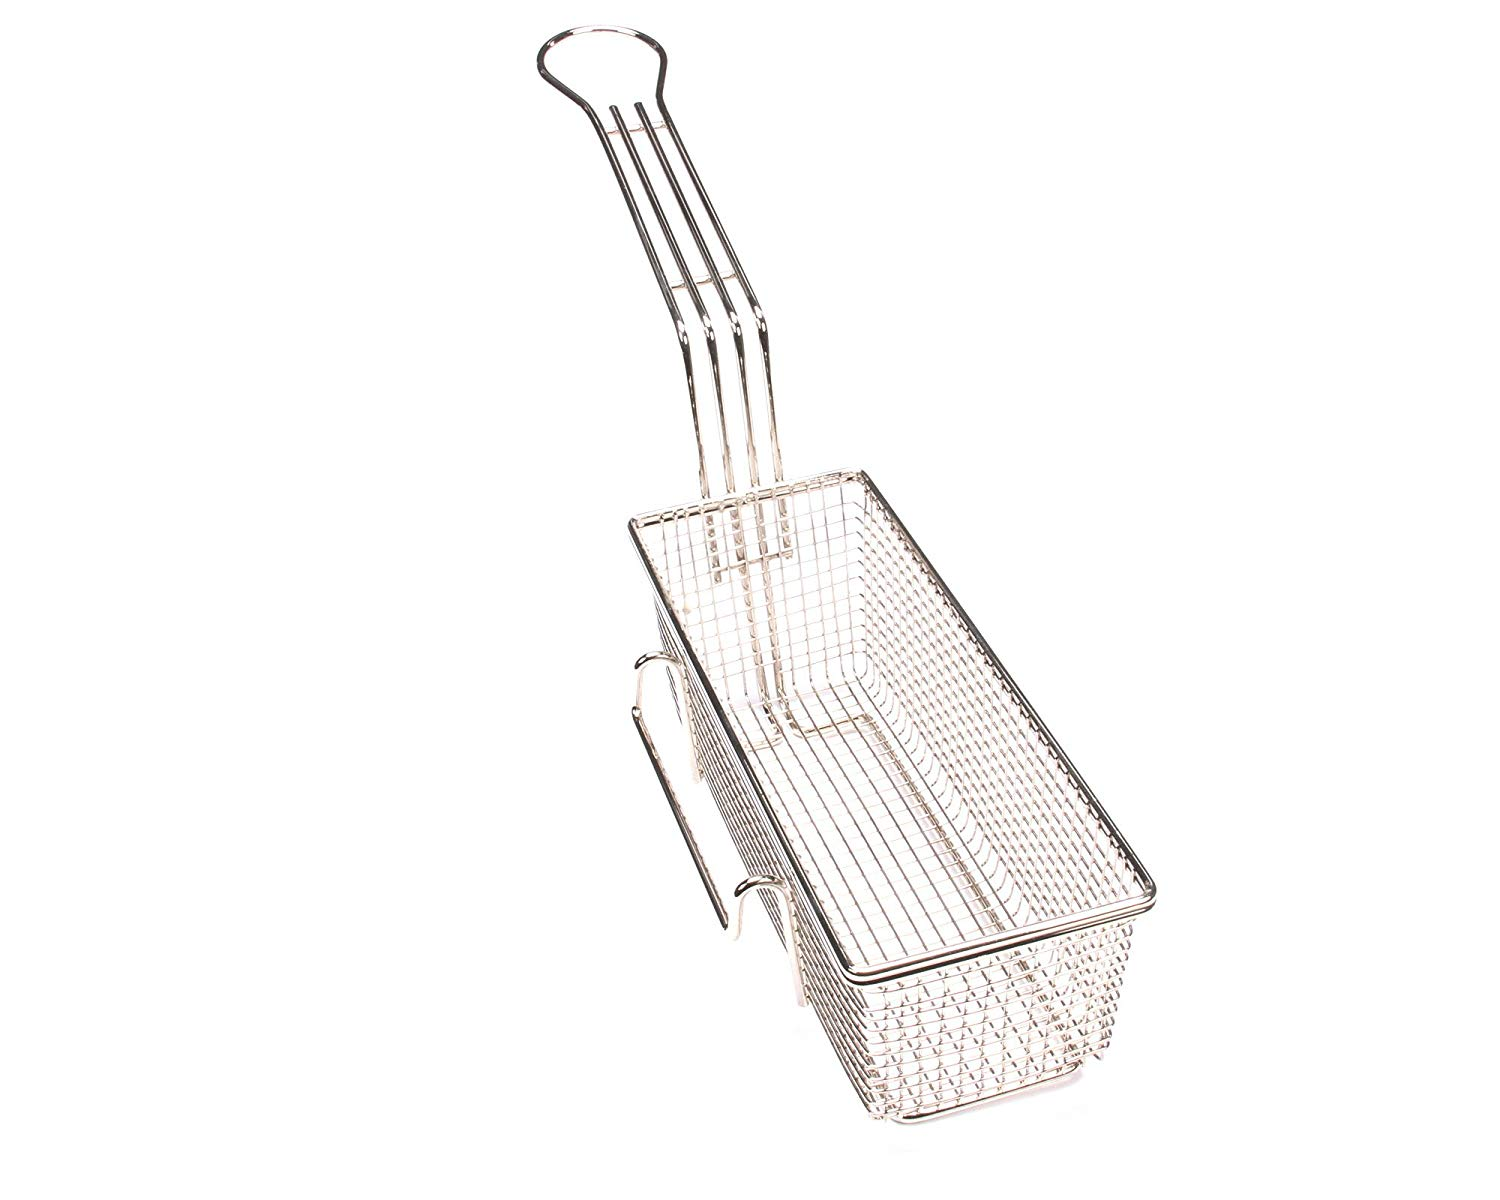 Grindmaster Cecilware V091A Countertop Fryer Baskets with Right Hook Placement Metal Handles, 18-Pound